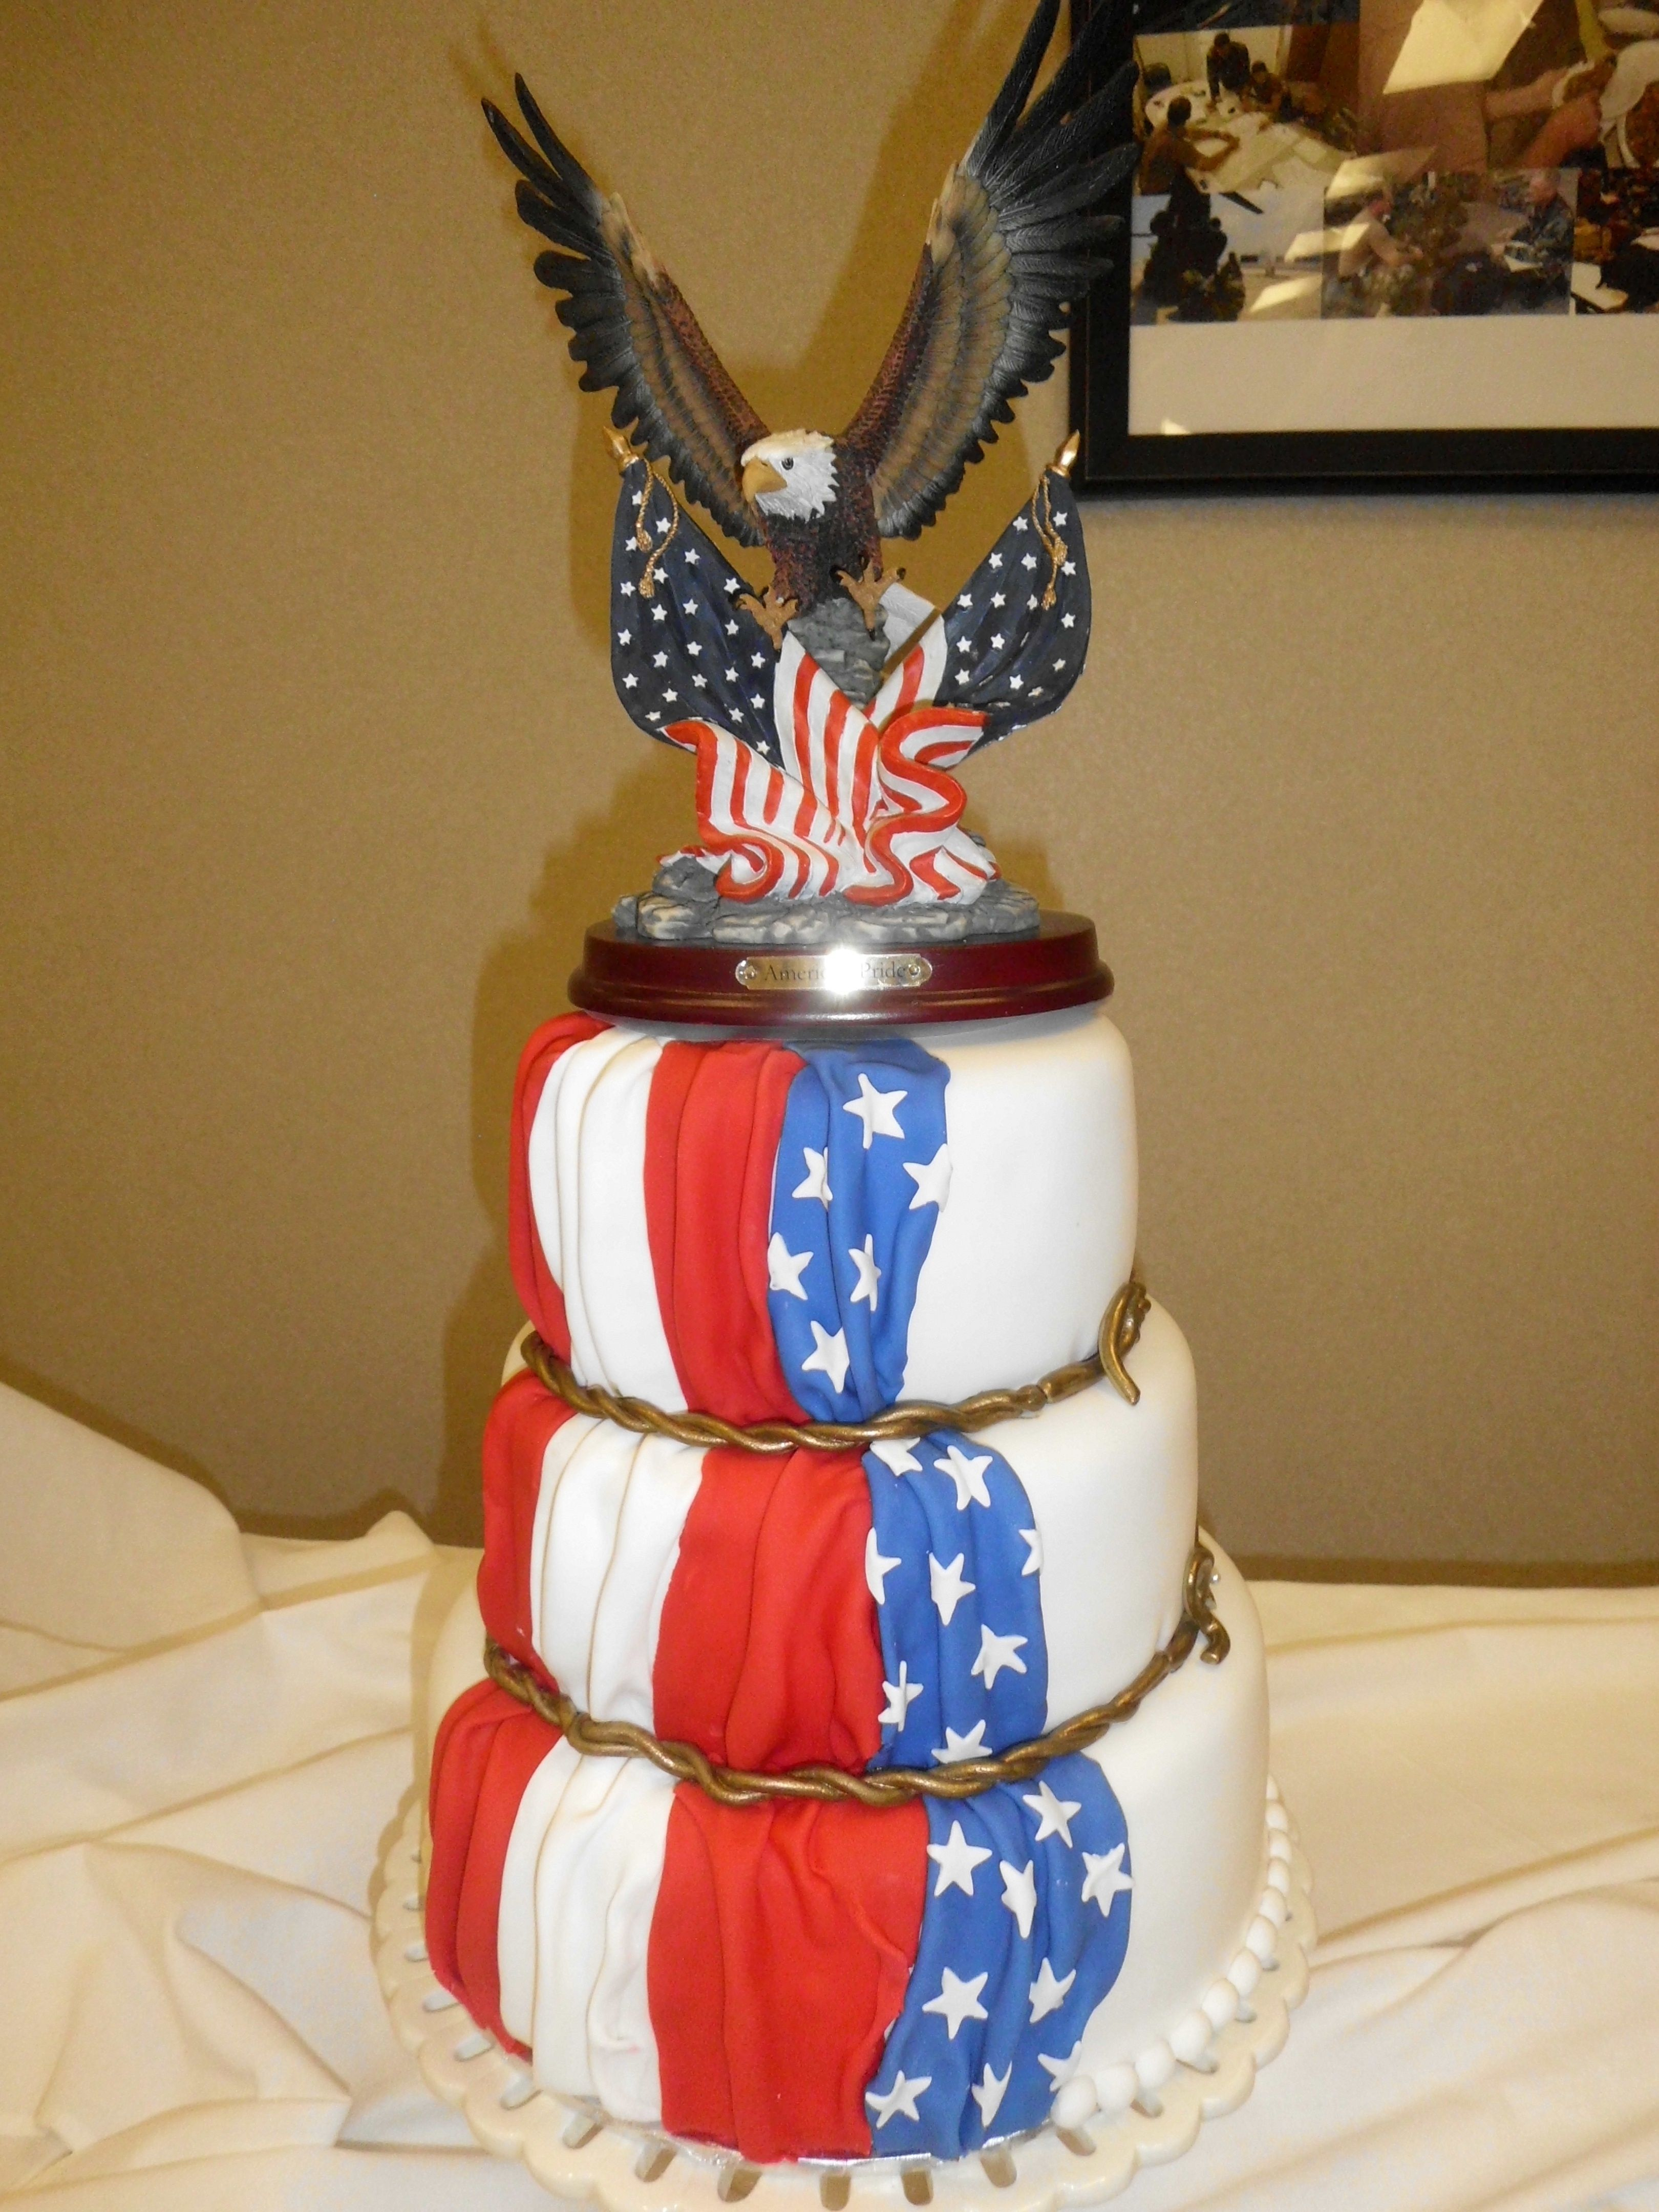 Full Colonel Retirement cake This was for my mom's